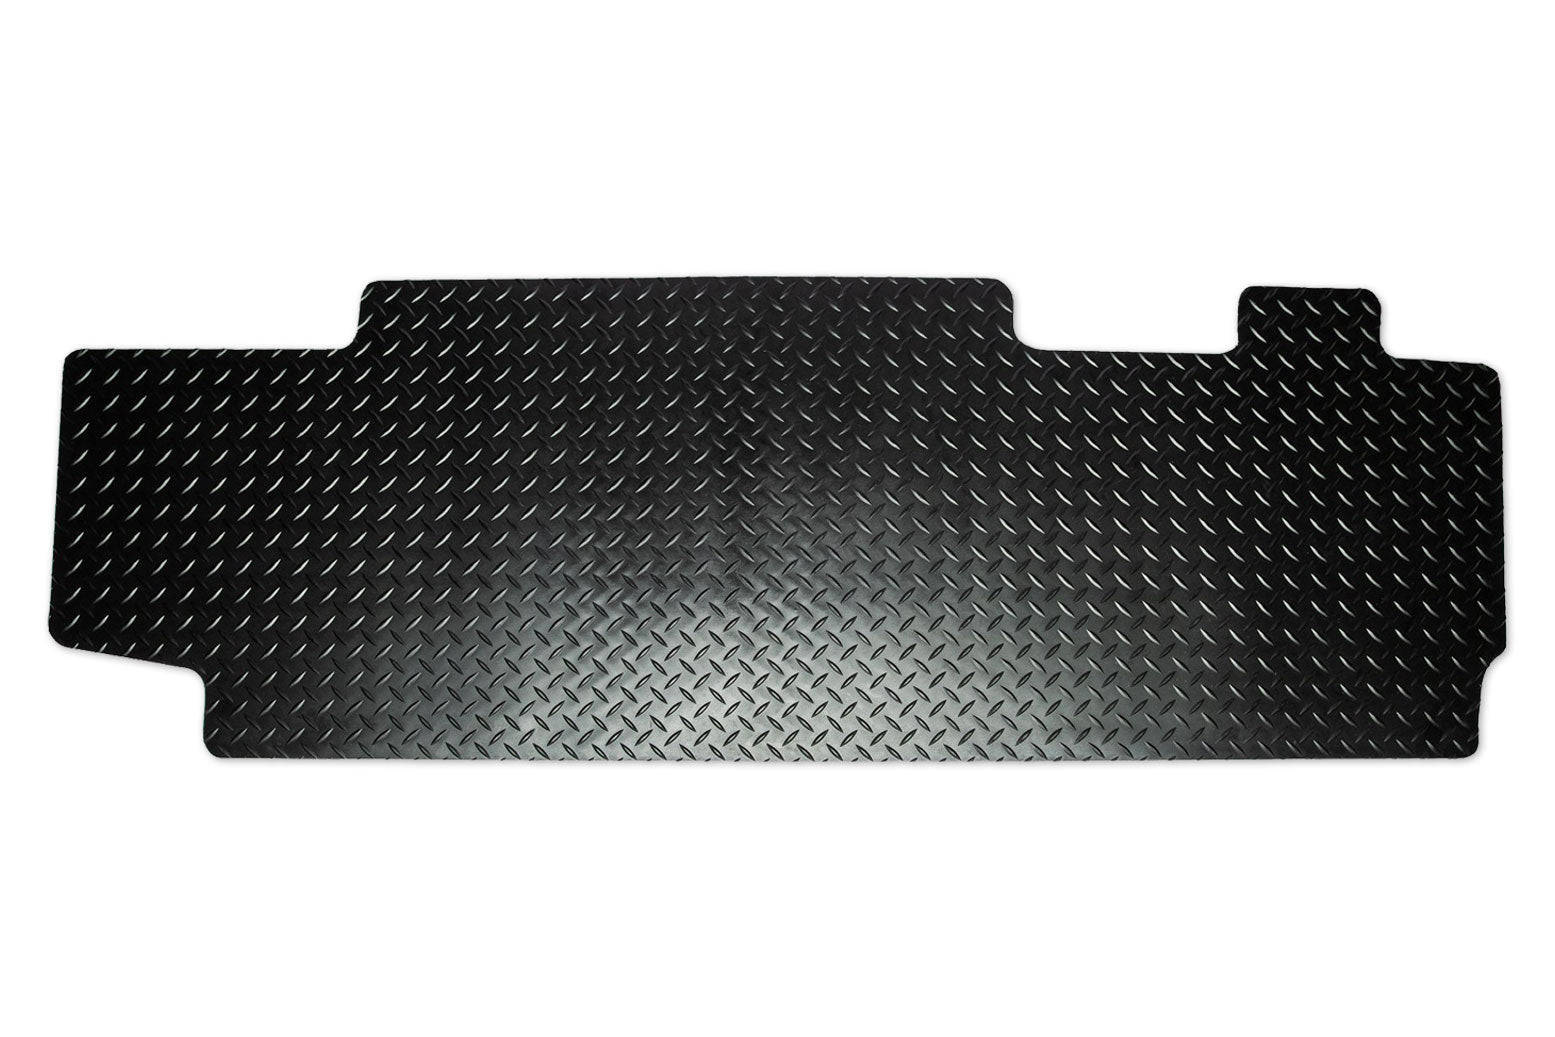 T6 combi rear mat for a 2 plus 1 seat with single slider door shown in black tread plate rubber